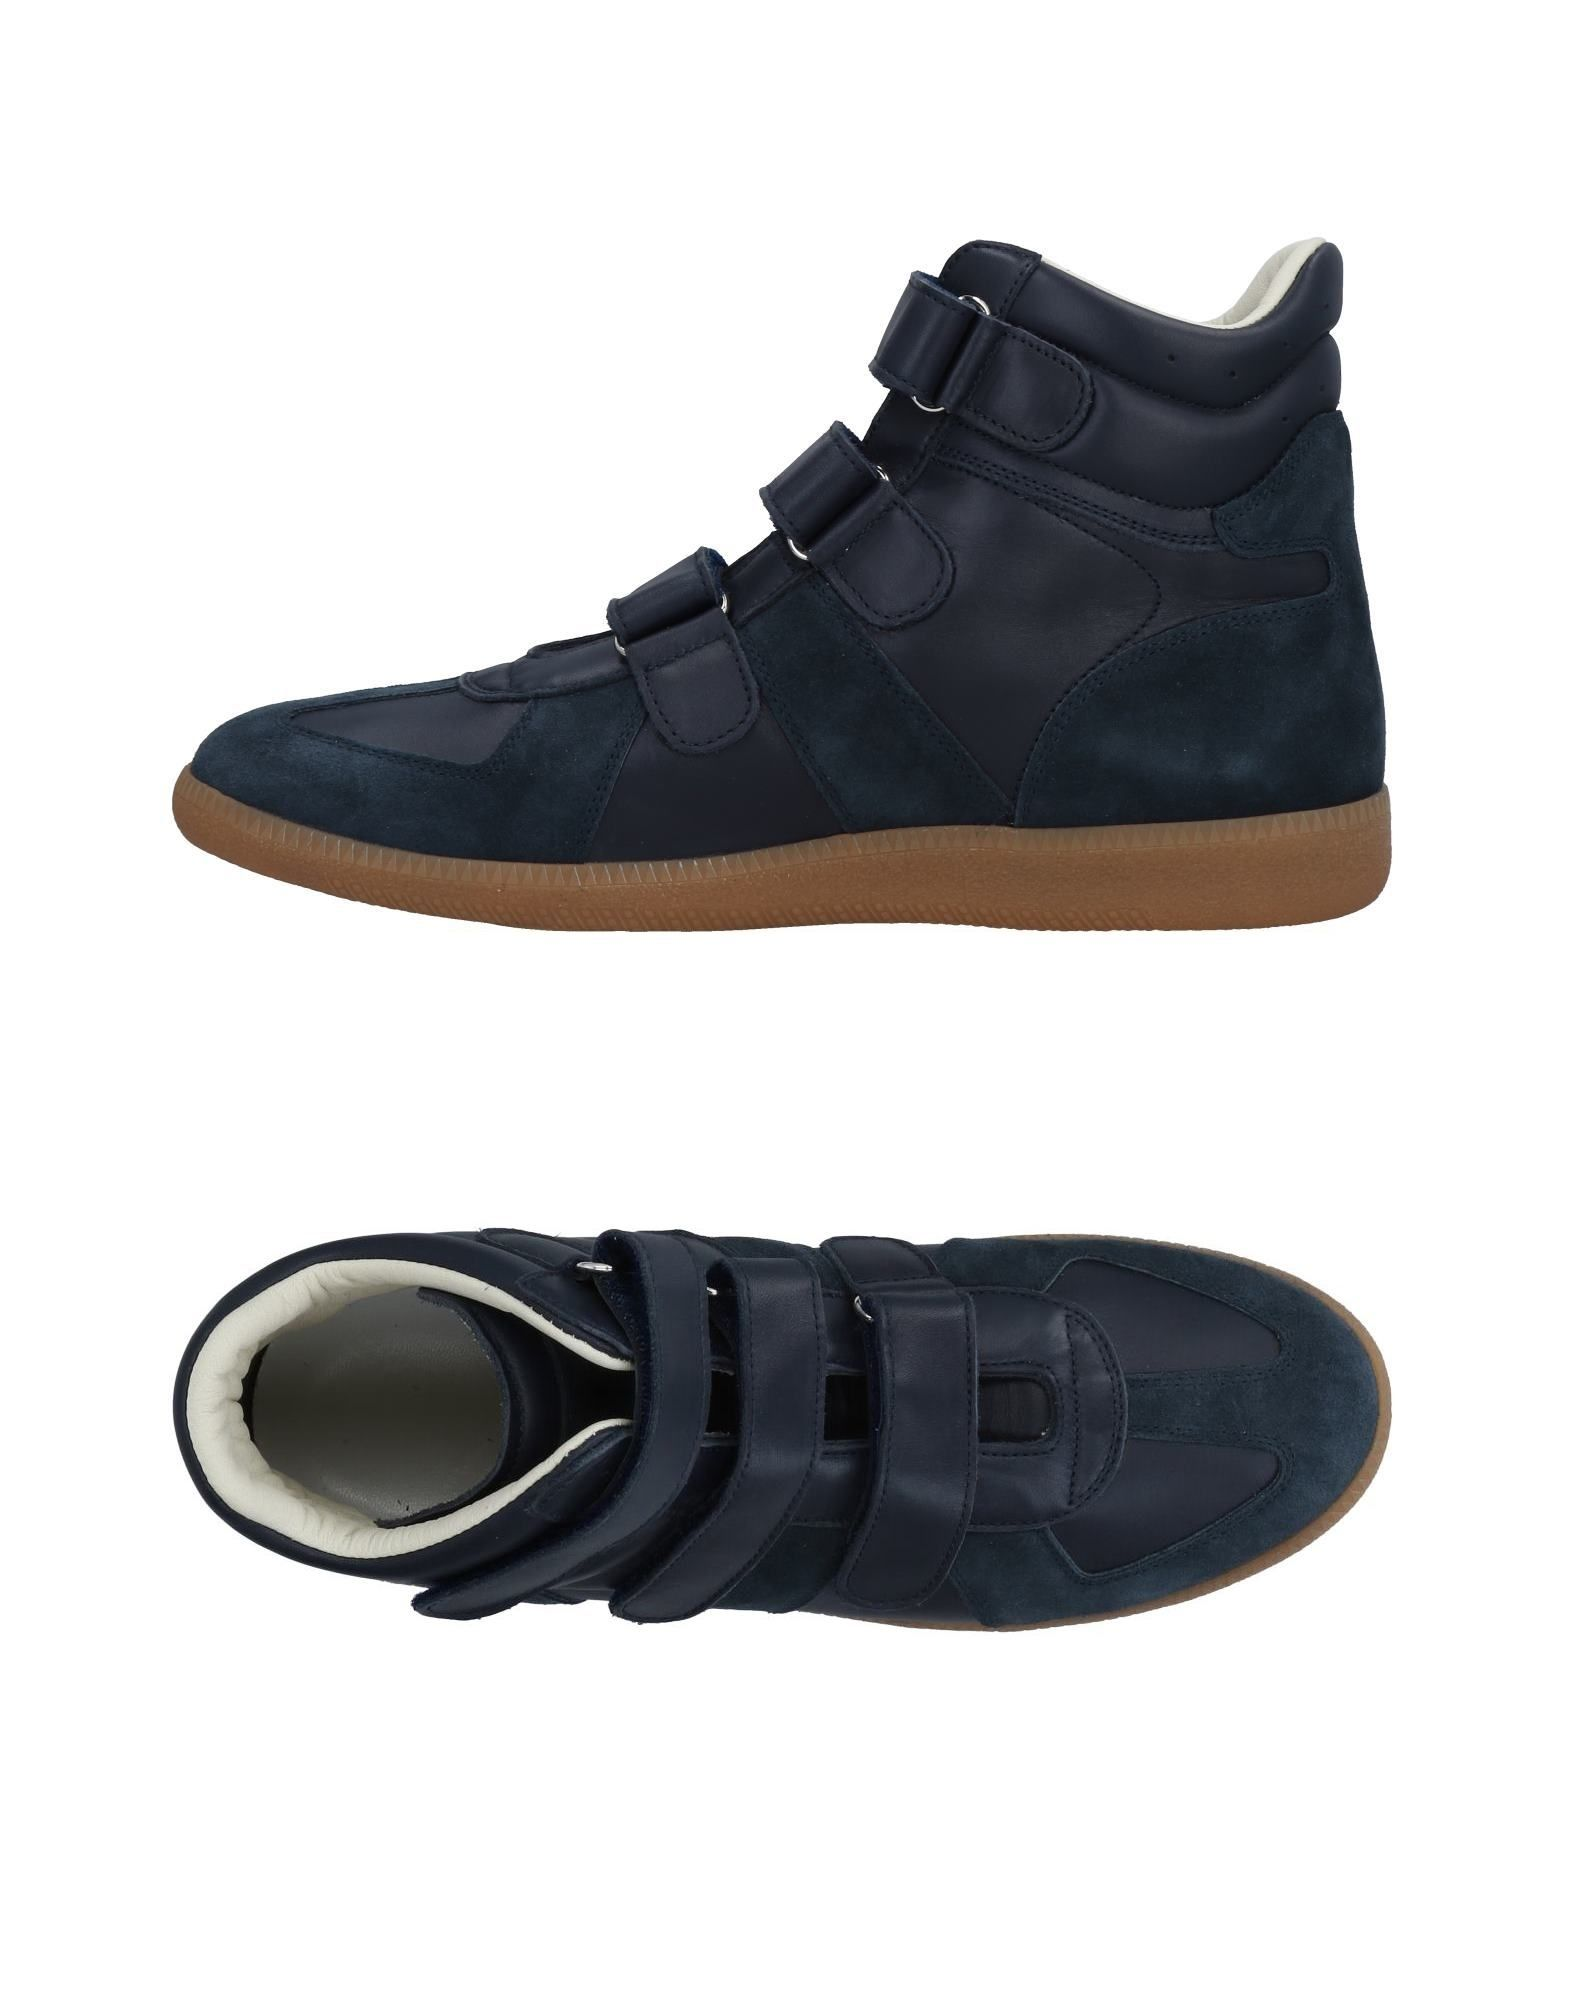 Maison Margiela Sneakers - Men Maison Margiela Canada Sneakers online on  Canada Margiela - 11471978VR d12719